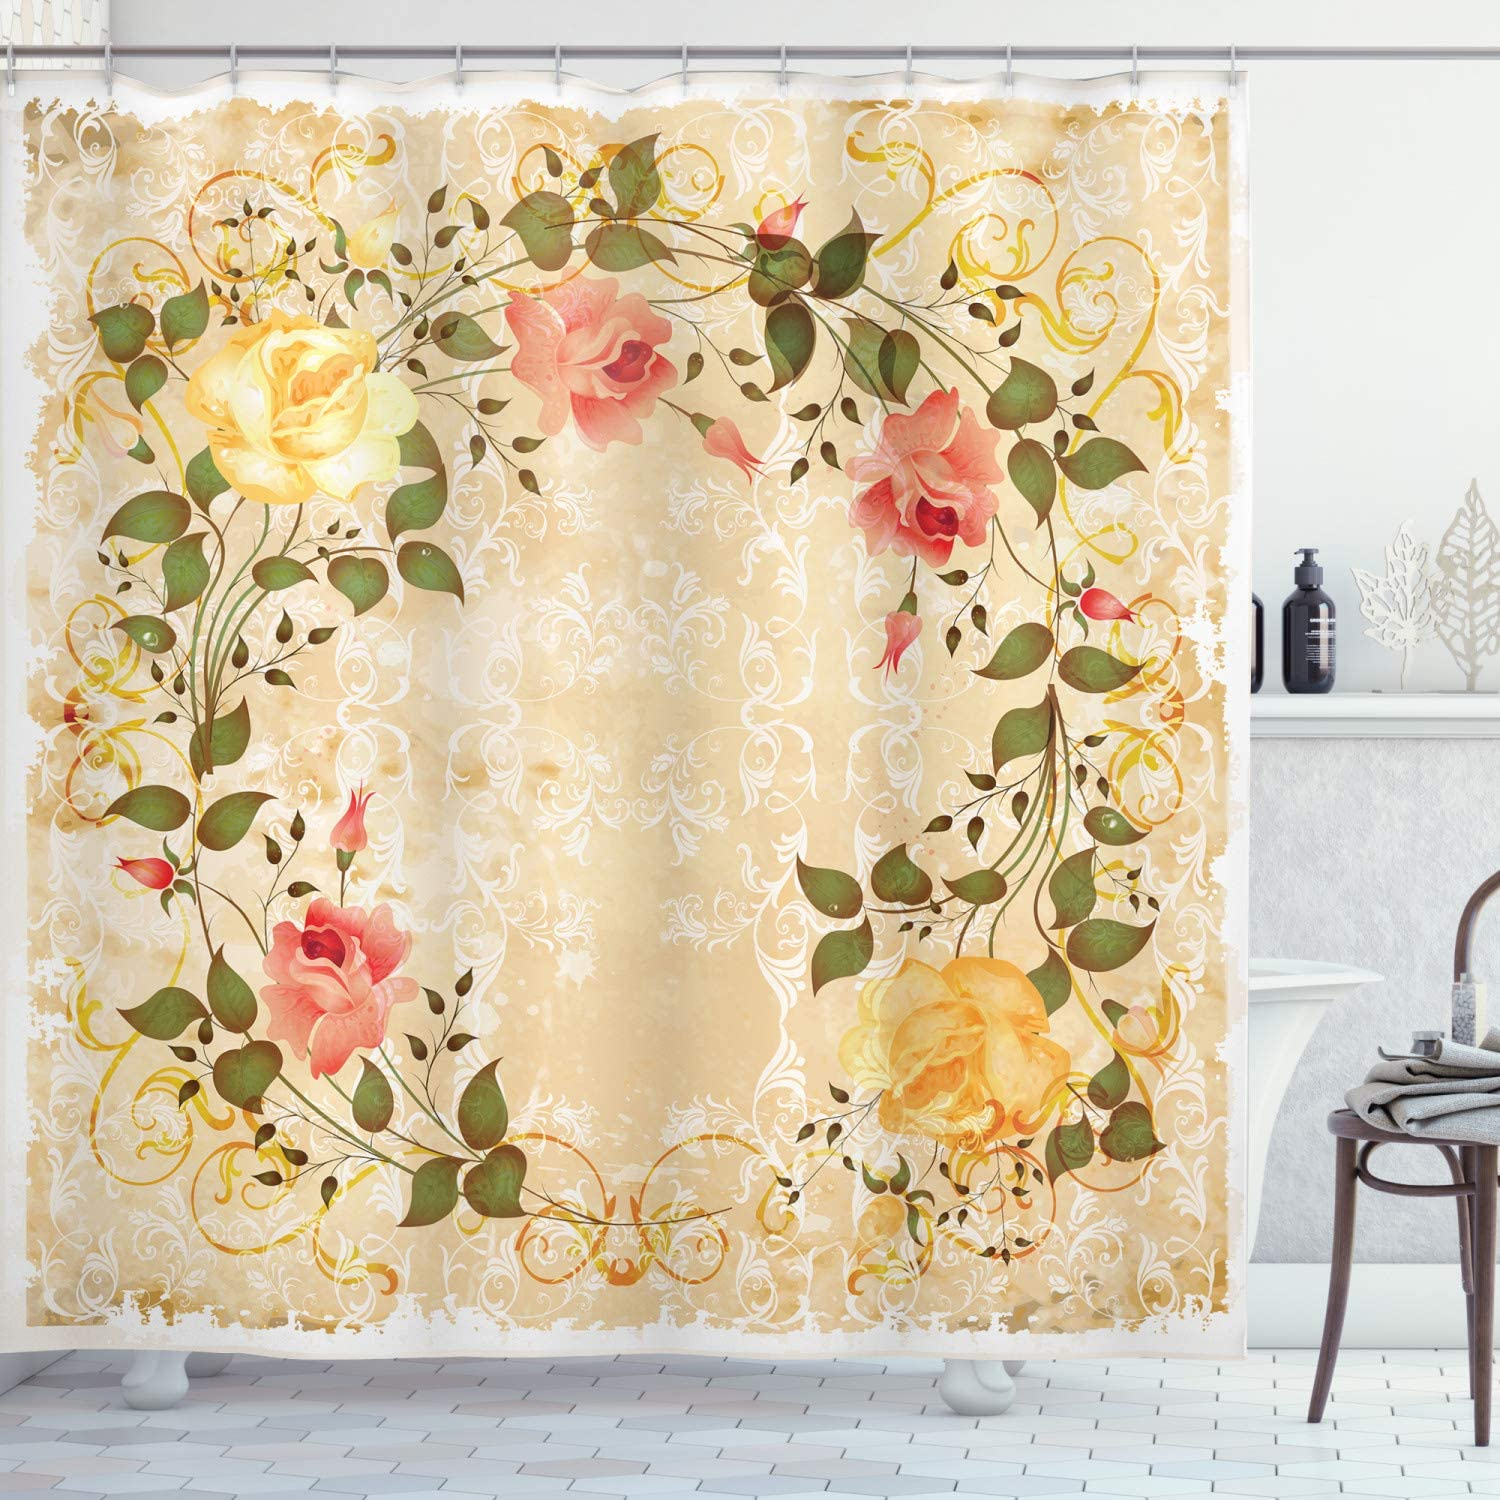 Cloth Shower Curtain Easy to Use Machine Washable Bathroom Decor by Ambesonne